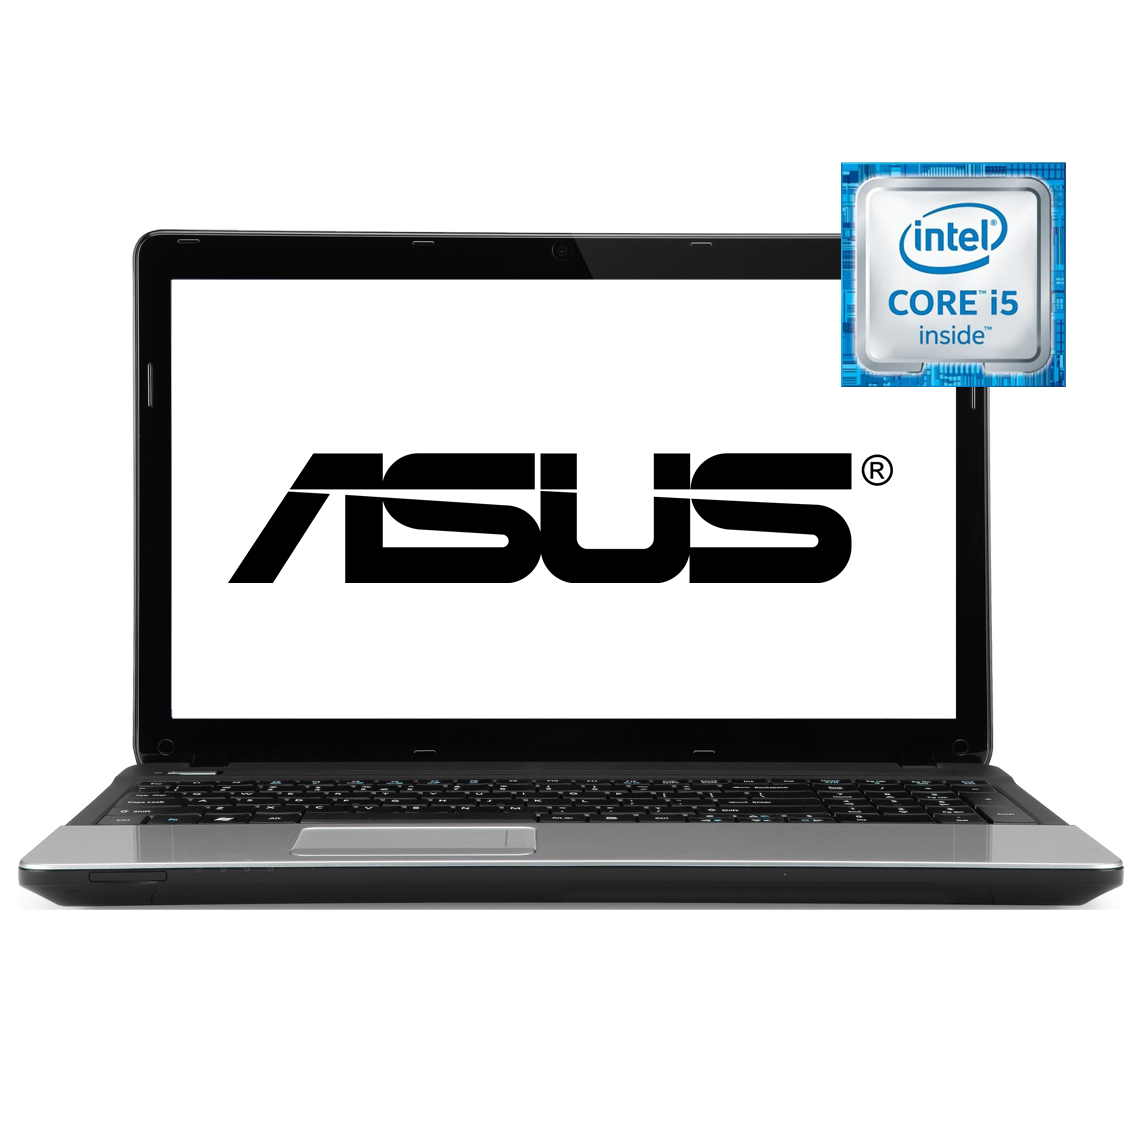 ASUS - 13 inch Core i5 2nd Gen